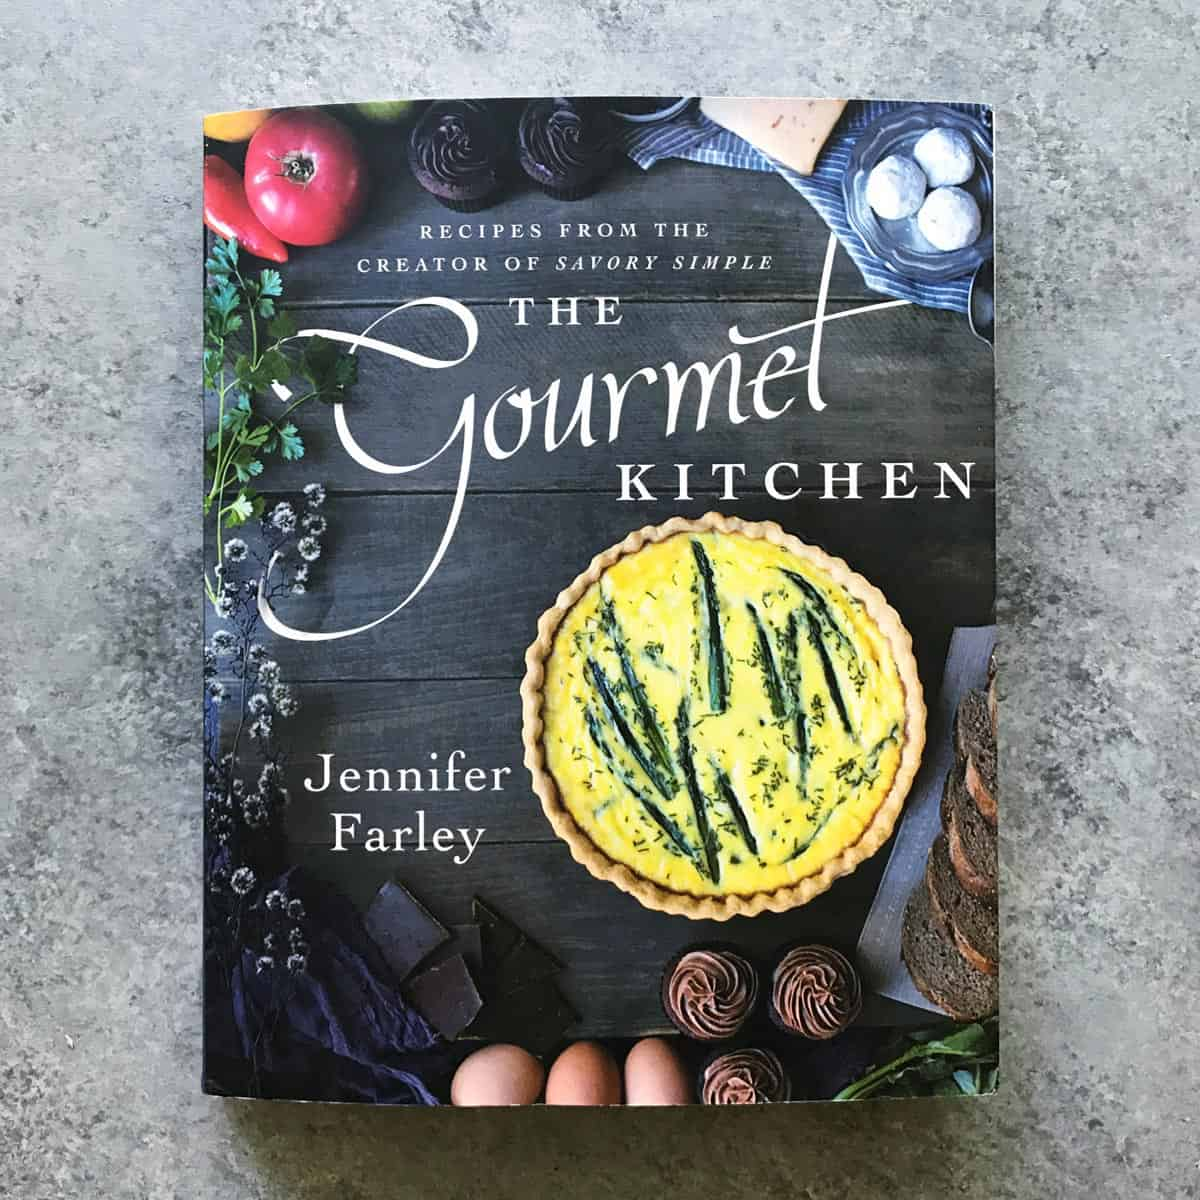 The Gourmet Kitchen by Jennifer Farley of Savory Simple